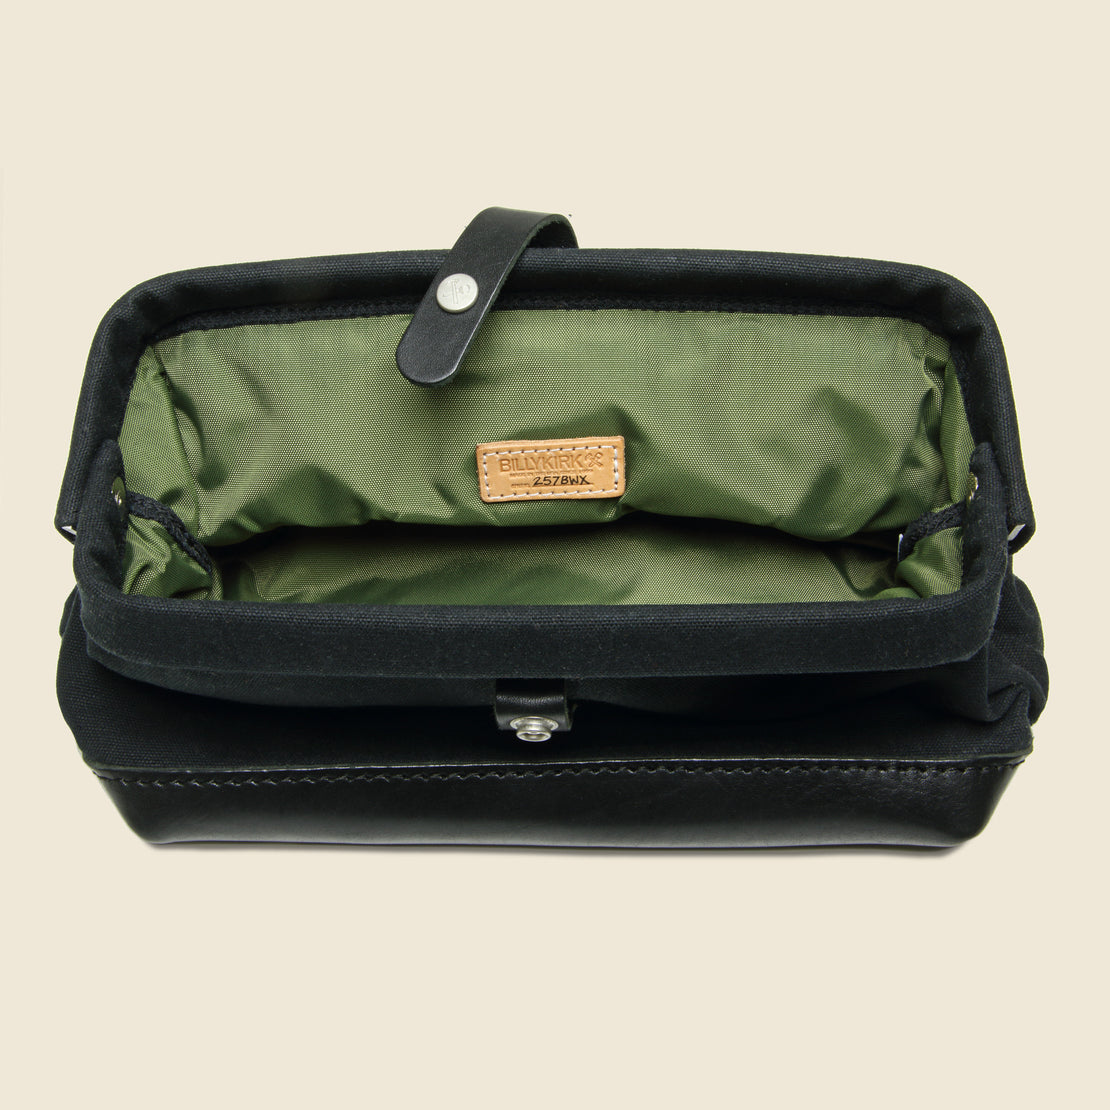 No. 257 Snap Dopp Kit - Black Waxed - BILLYKIRK - STAG Provisions - Accessories - Bags / Luggage